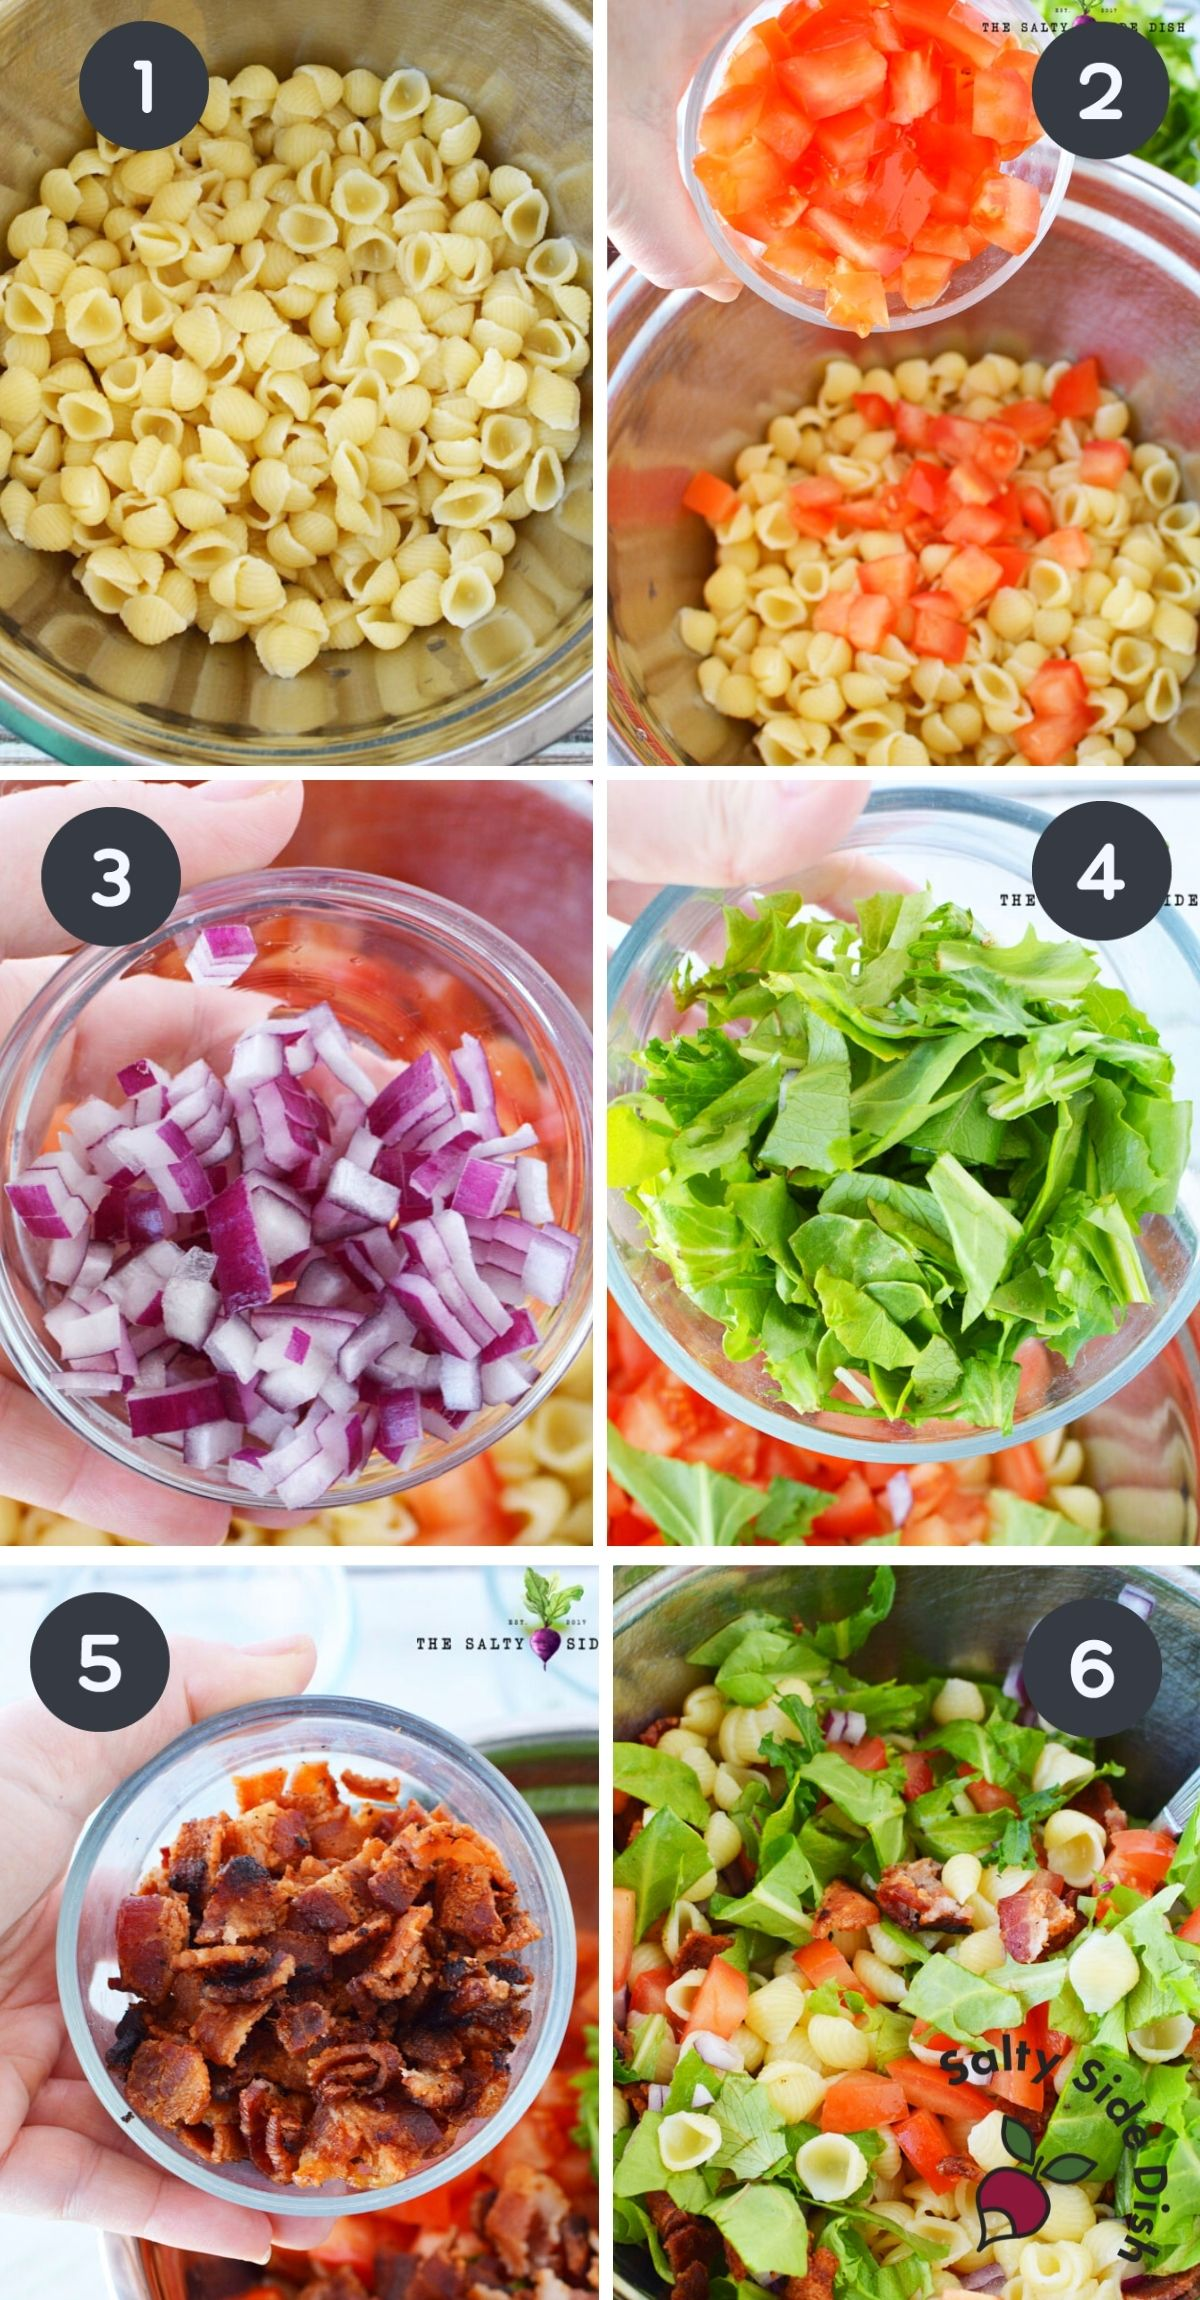 6 image collage that shows progression of ingredients being added to a bowl for blt salad.